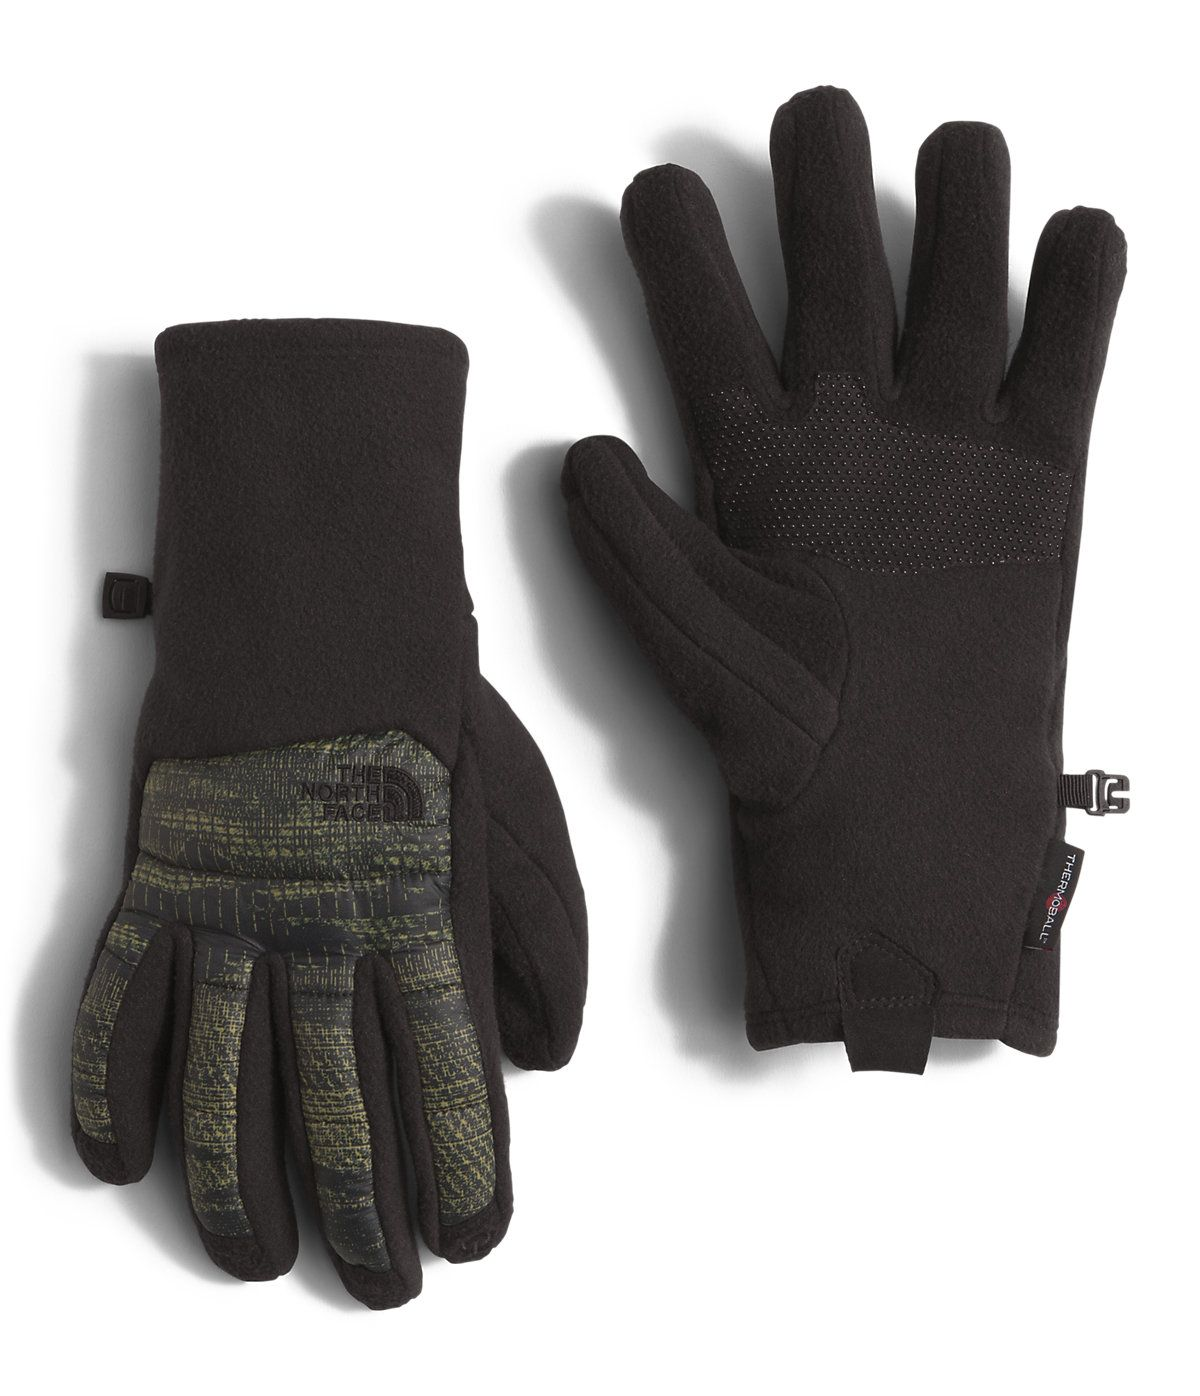 Warm and functional in cool-to-cold conditions, this Etip™ glove is insulated with ThermoBall™ powered by PrimaLoft® at the back of the hand and features touchscreen conductive fibers at the fleece palms and on all five fingers. Round synthetic clusters trap and retain heat to achieve lightweight warmth in cold, wet conditions.